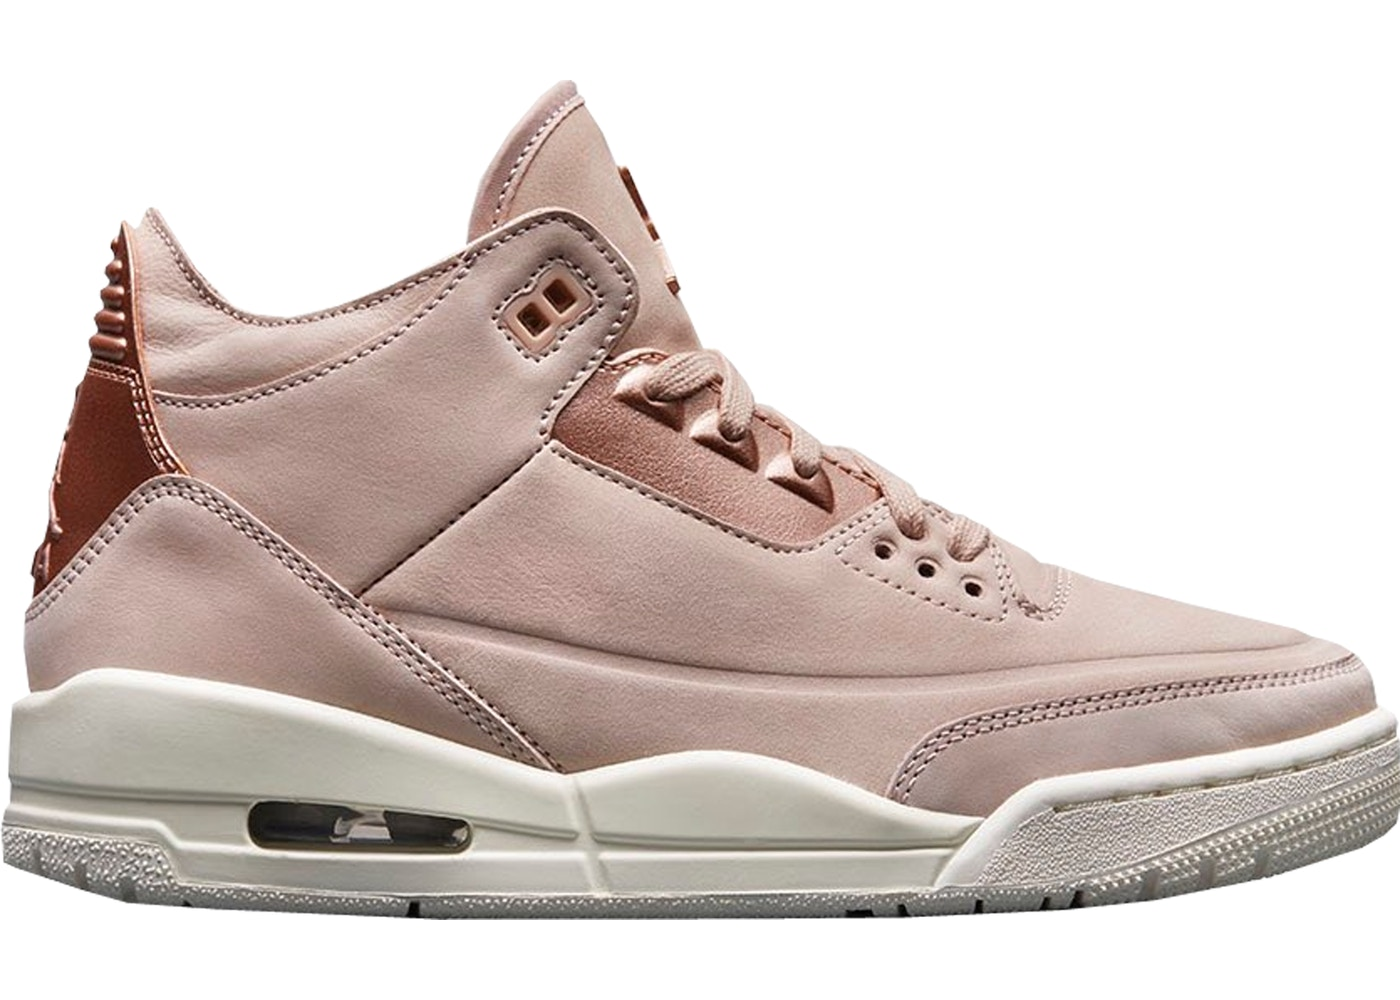 a481035f25b0 Sell. or Ask. Size  5W. View All Bids. Jordan 3 Retro Particle Beige ...